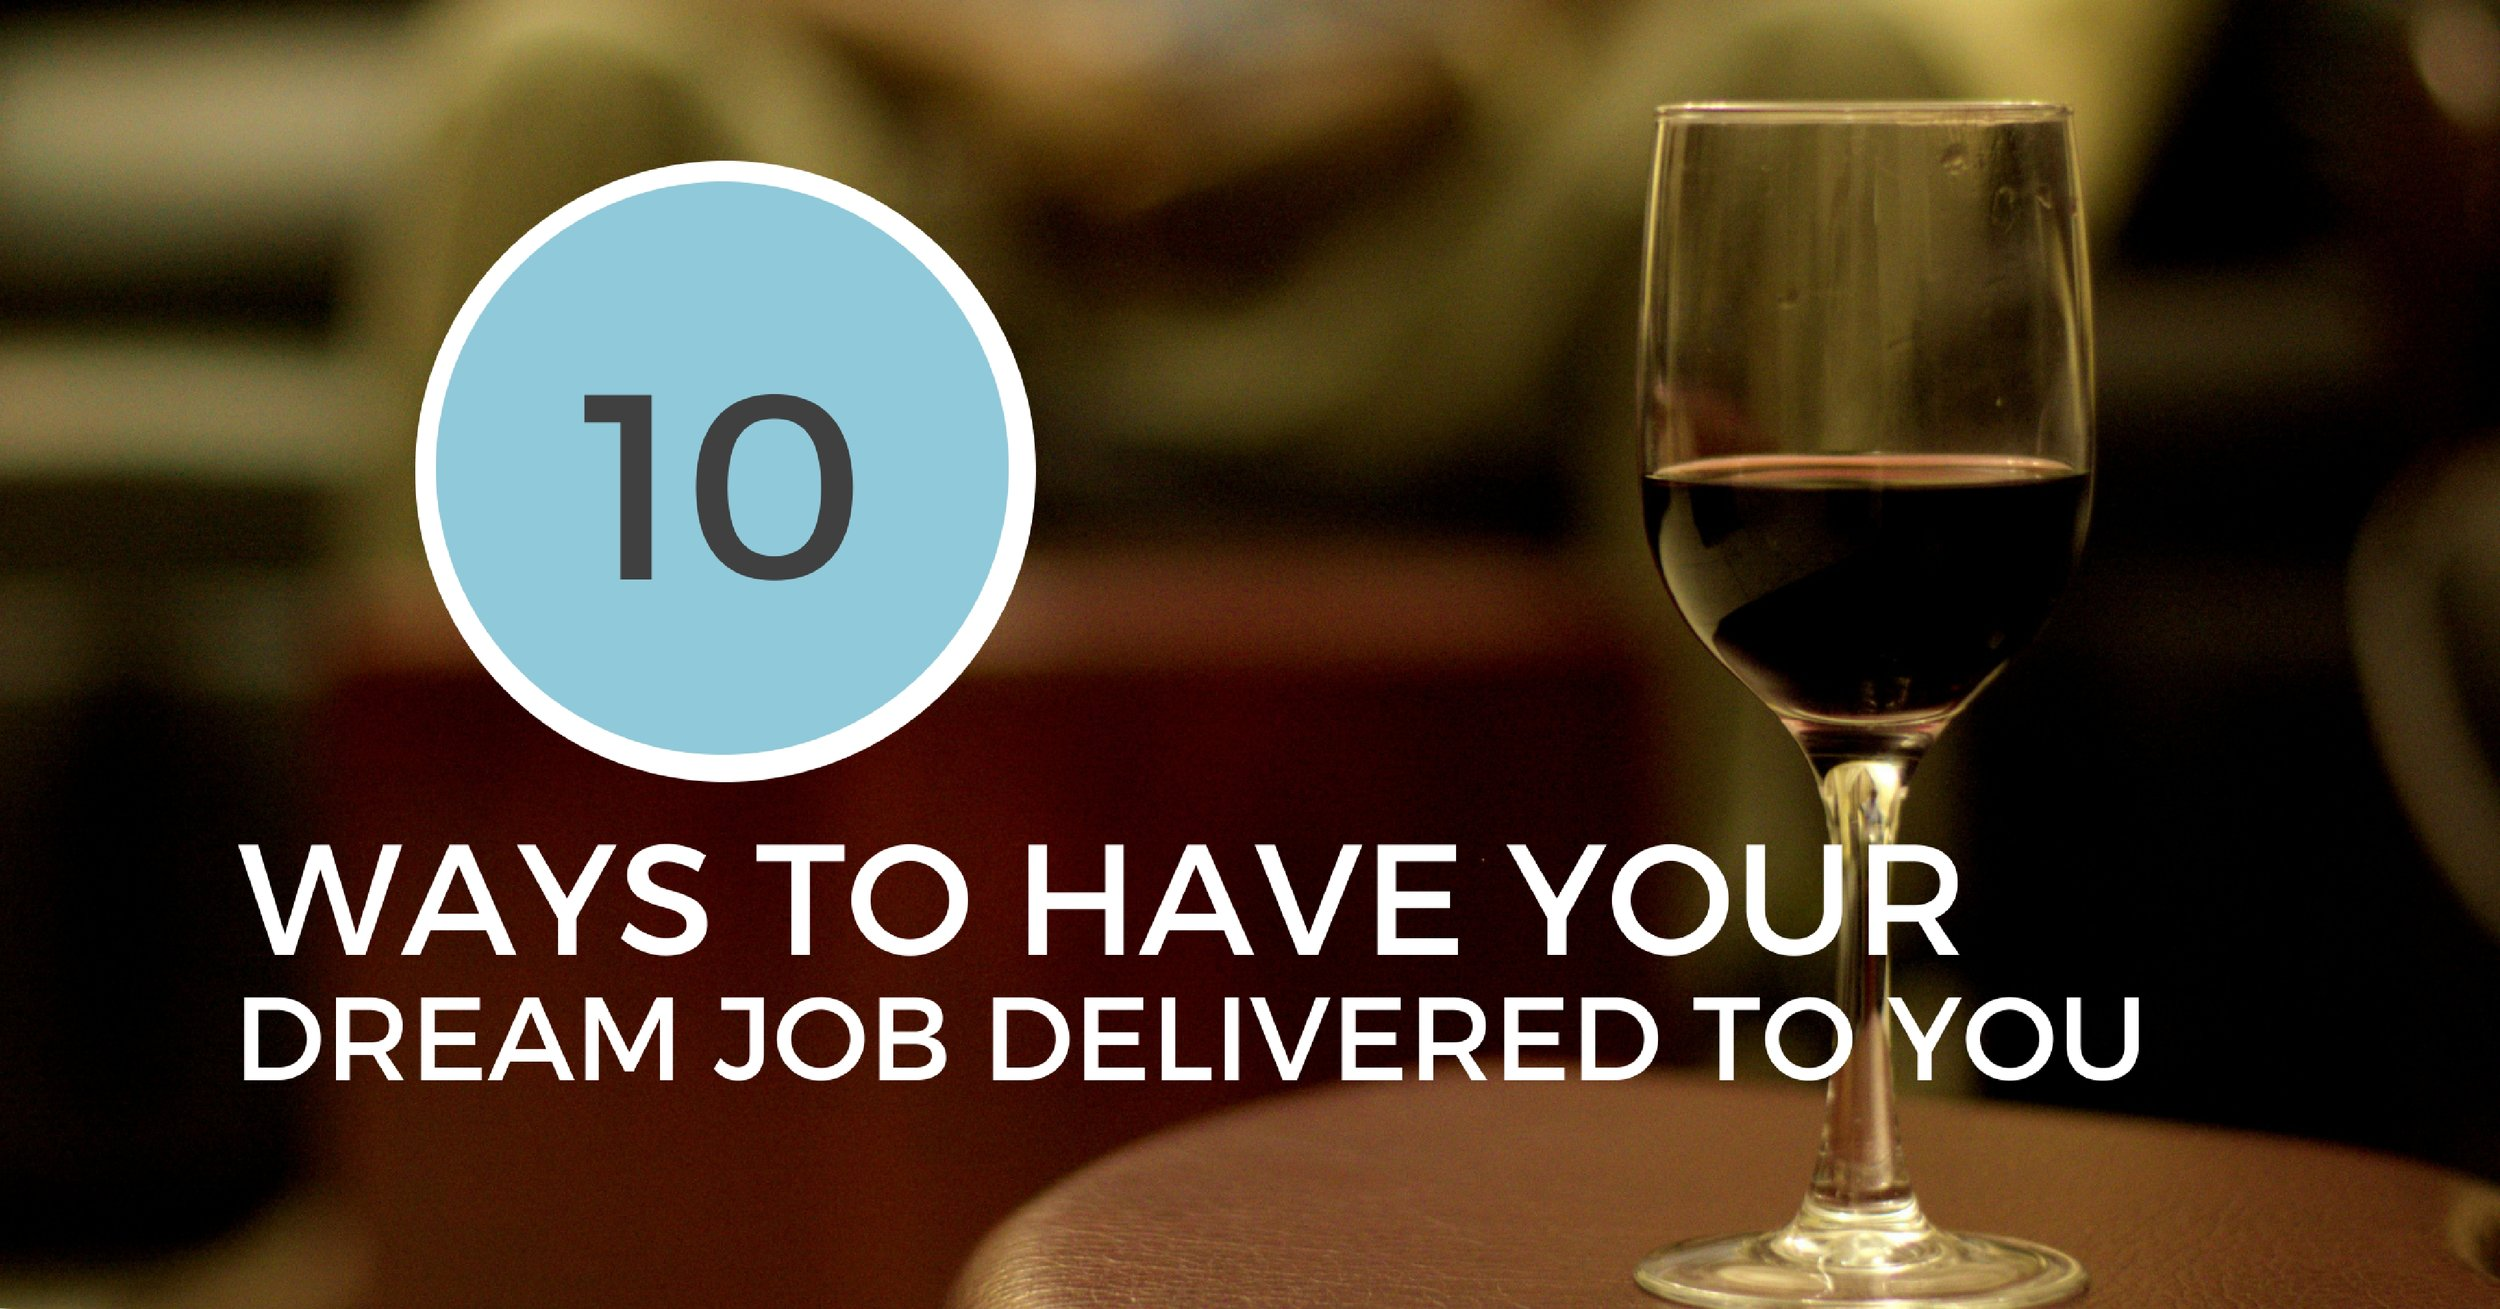 10 Ways To Have Your Dream Job Delivered To You - Off The Clock Resumes